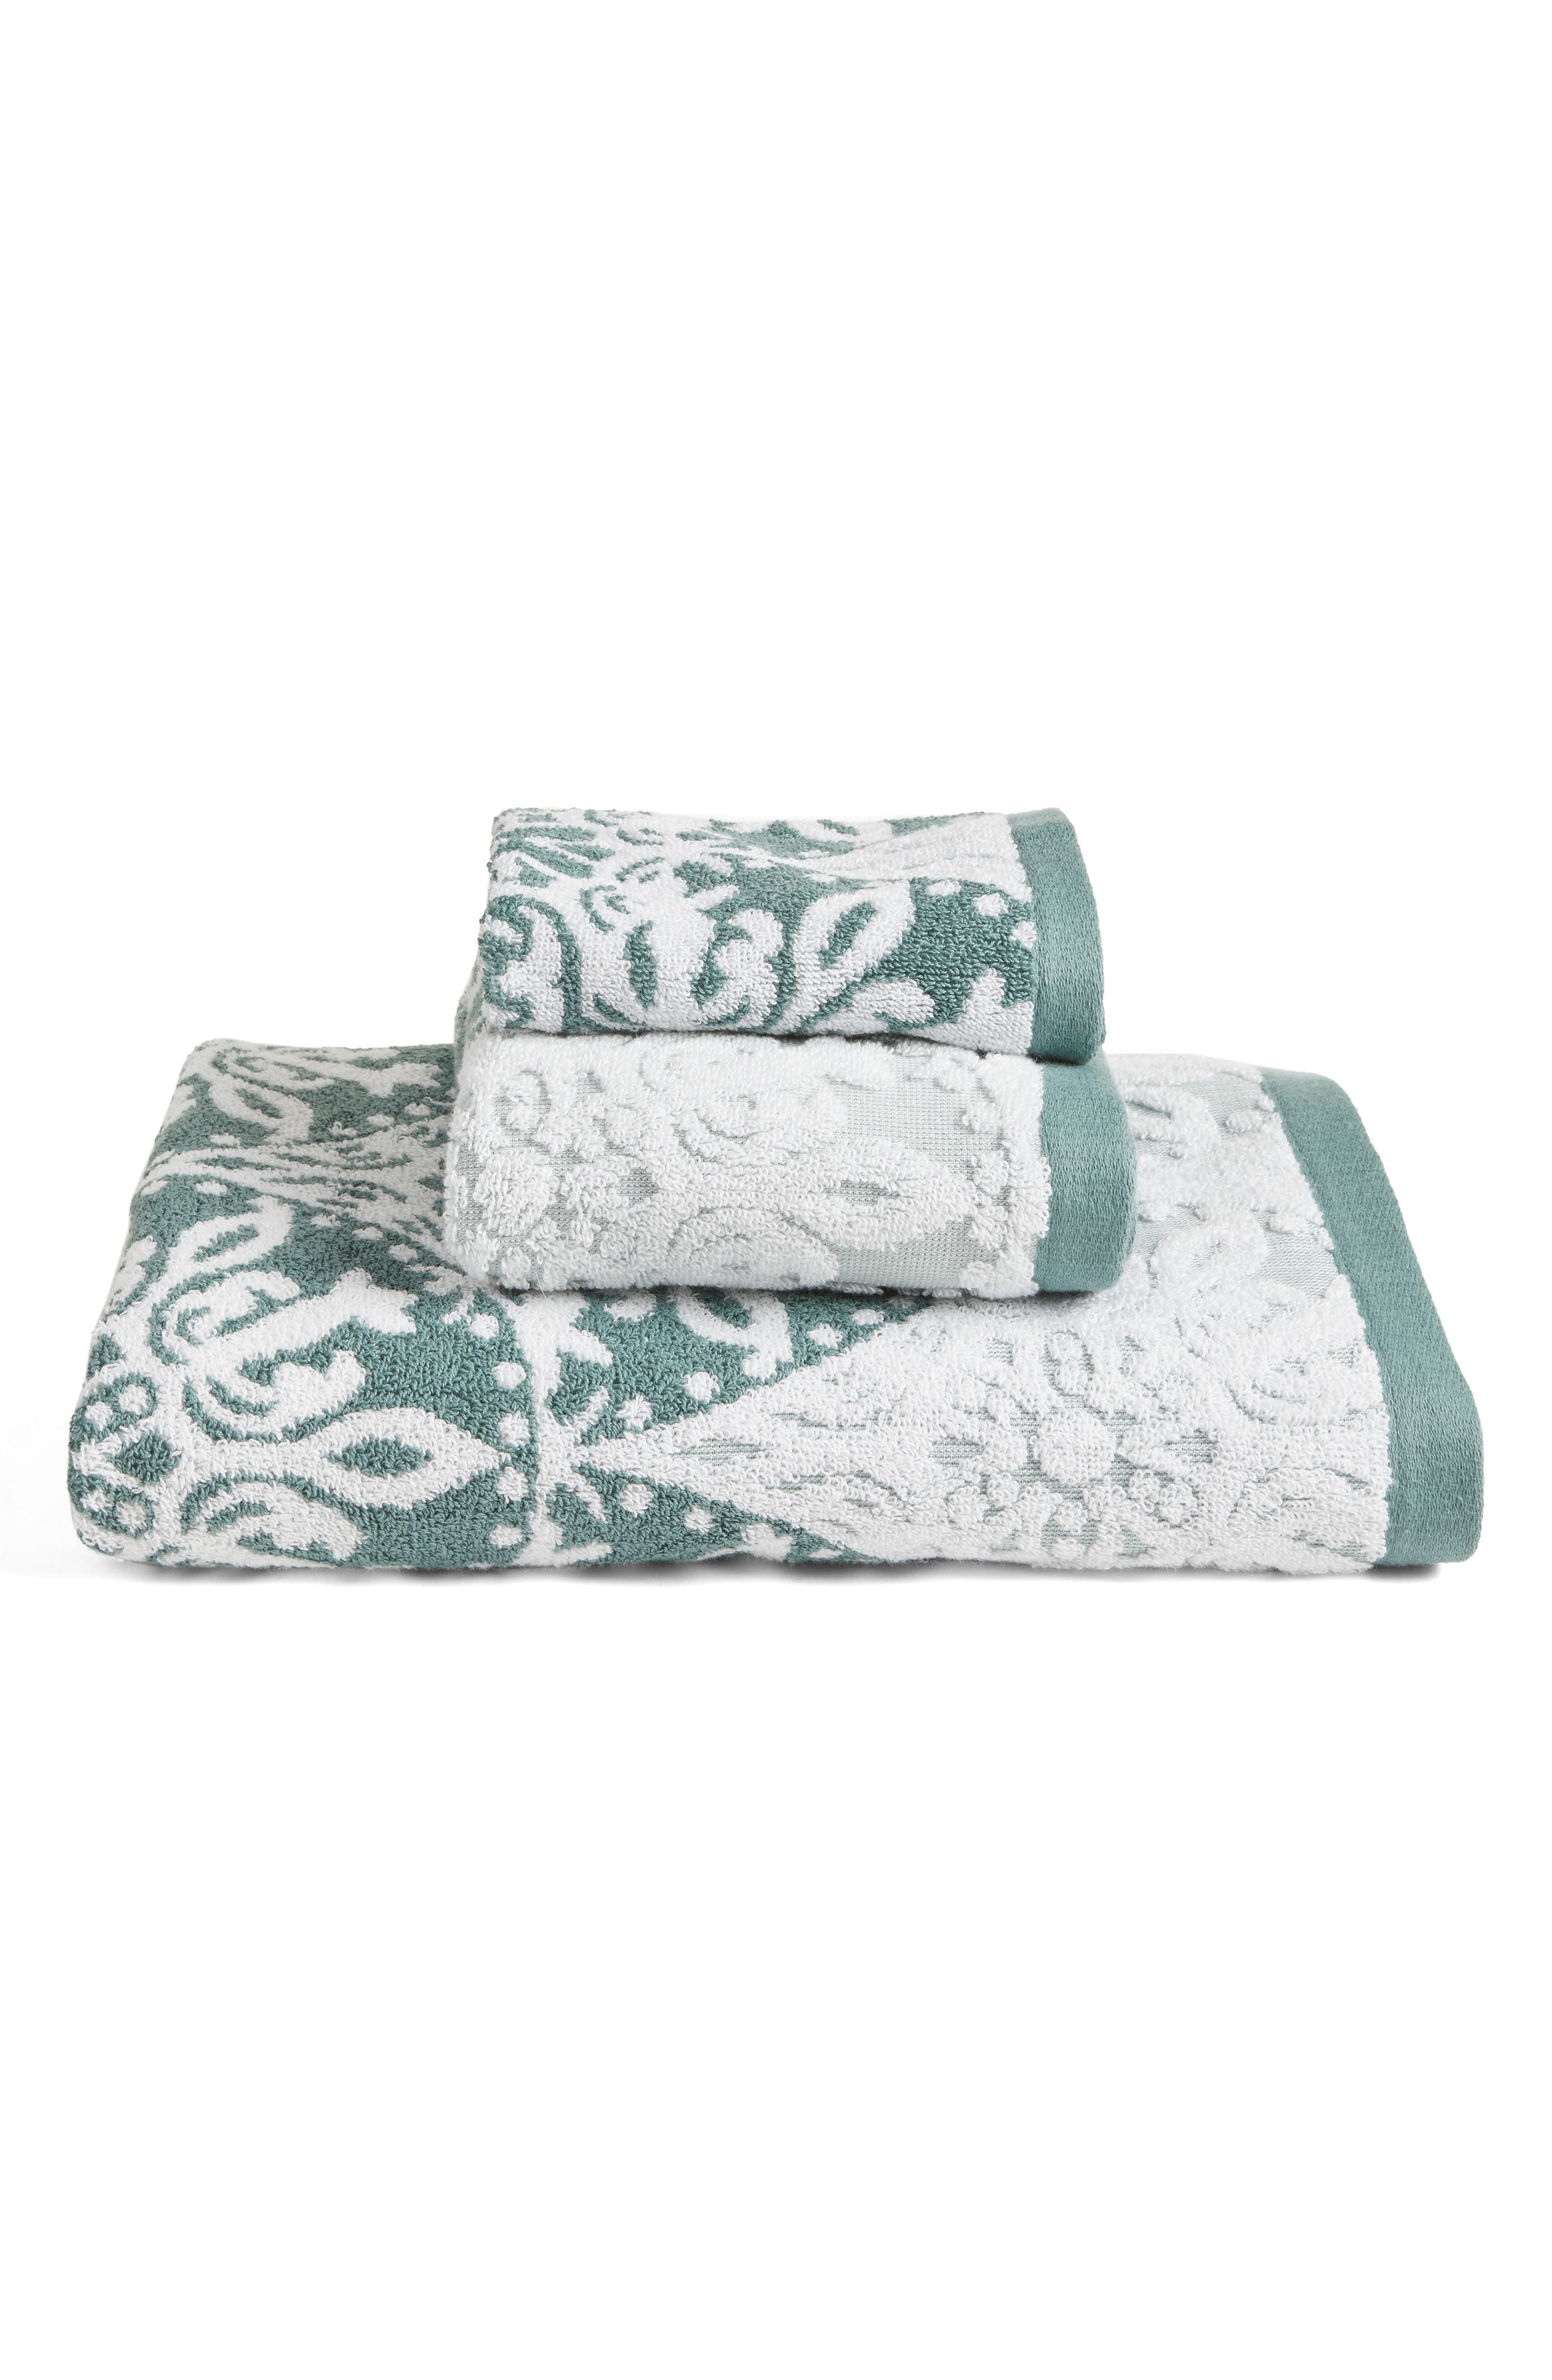 Nordstrom at Home Fan Ombré Jacquard Towel Collection